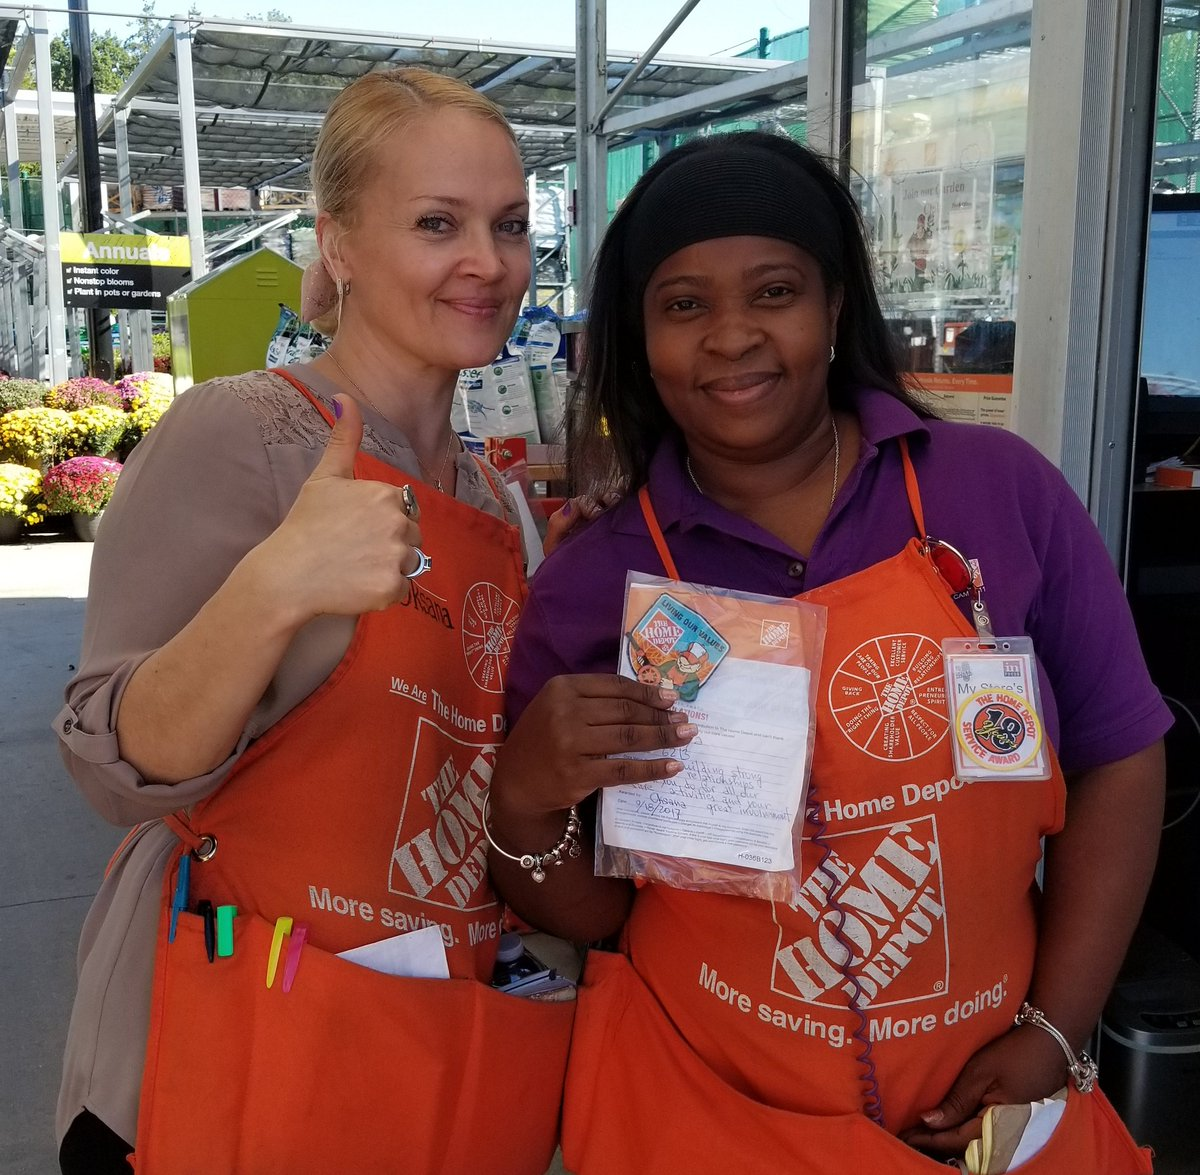 Great job HC Tanya! Great cookout help, making associates happy = our  success #HomeDepot #6213 #greatteam  @scottgseam @AcevedoRosemary<br>http://pic.twitter.com/P7kyGPabpC